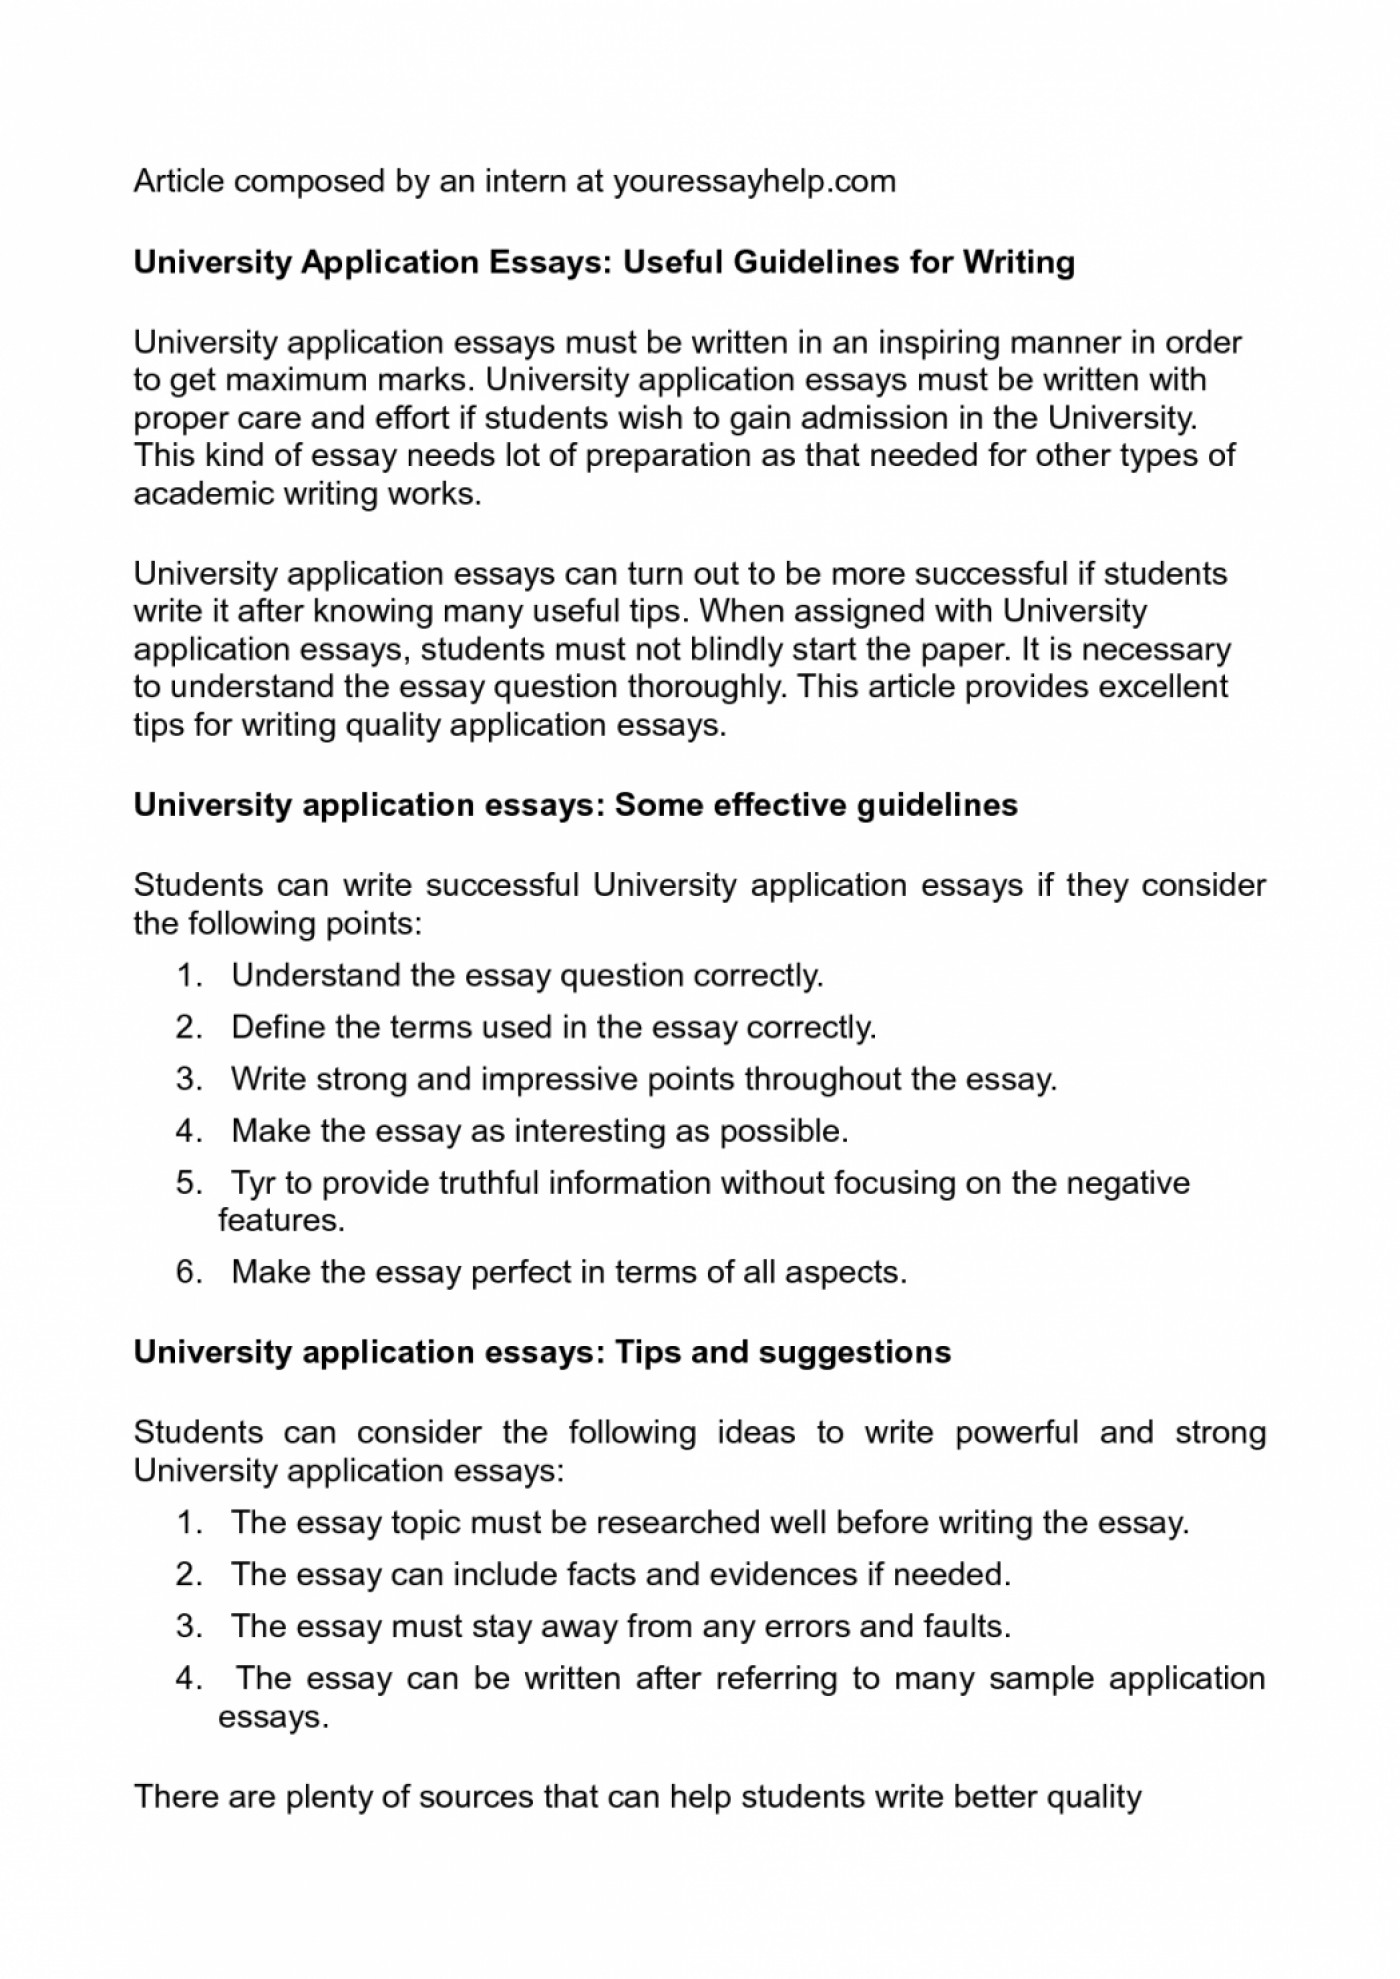 005 Define Argumentative Essay Top Writing Site For University Definition Argument Topics 1048x1482 Fantastic Format & Examples Claim Dictionary 1400